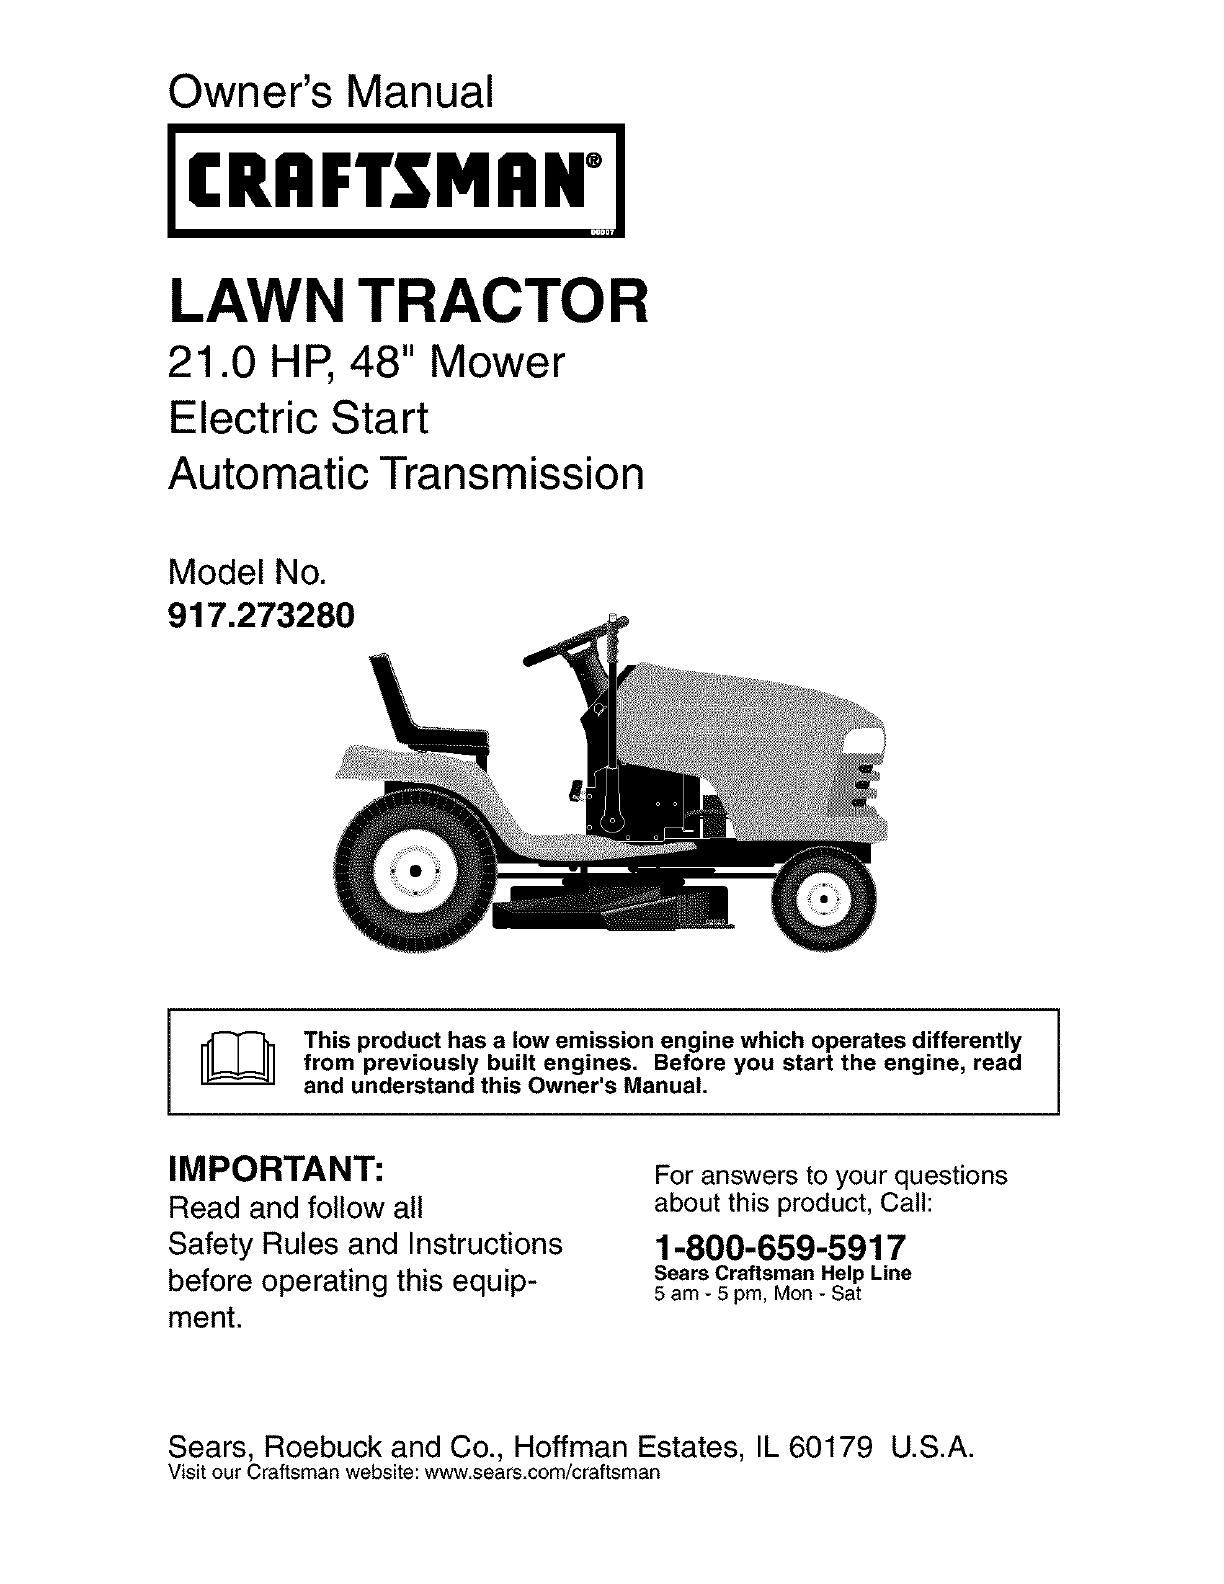 craftsman 917273280 user manual lawn tractor manuals and guides l0308177 rh usermanual wiki owners manual craftsman lt1000 lawn tractor service manual for craftsman riding mower